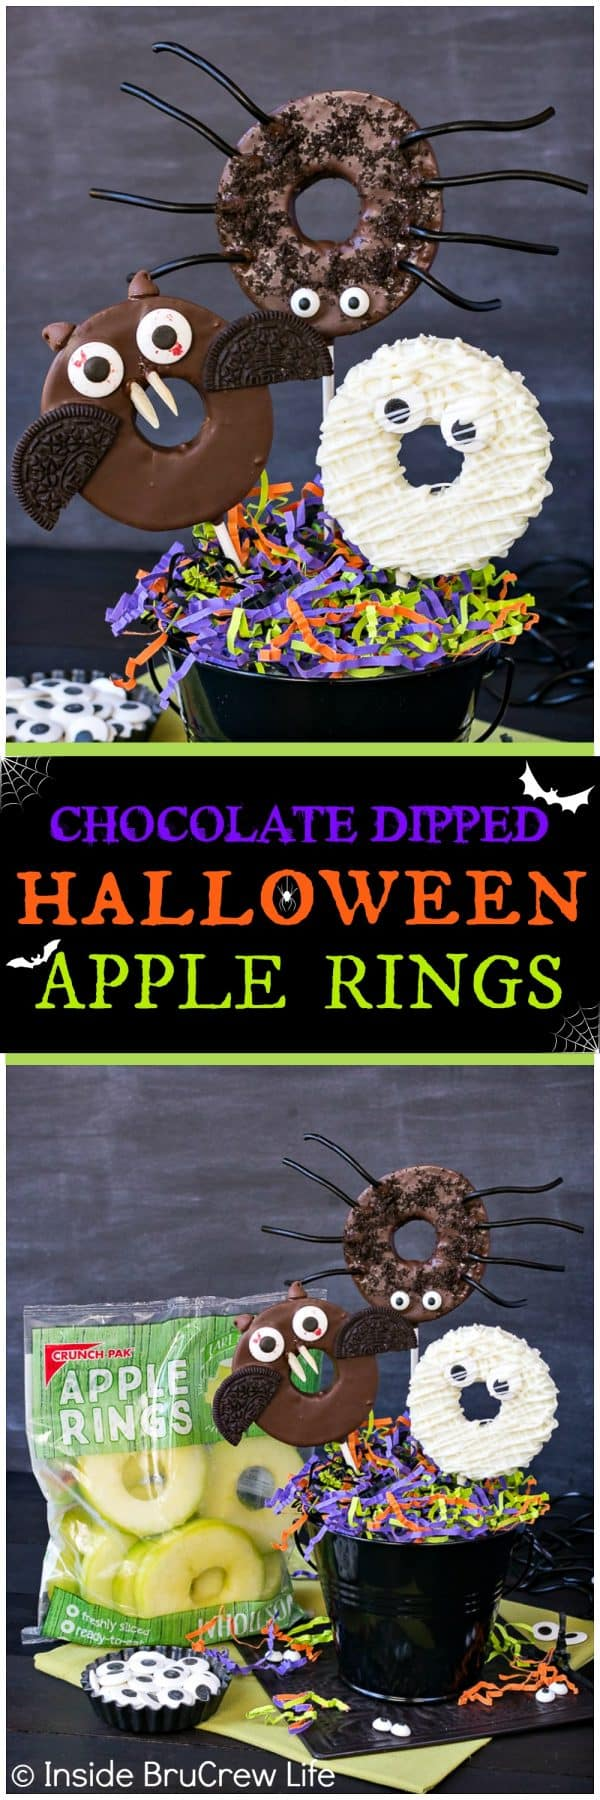 Chocolate Dipped Halloween Apple Rings - candy eyes and cookies add a fun twist to these easy chocolate covered apples. Easy no bake recipe for Halloween parties!